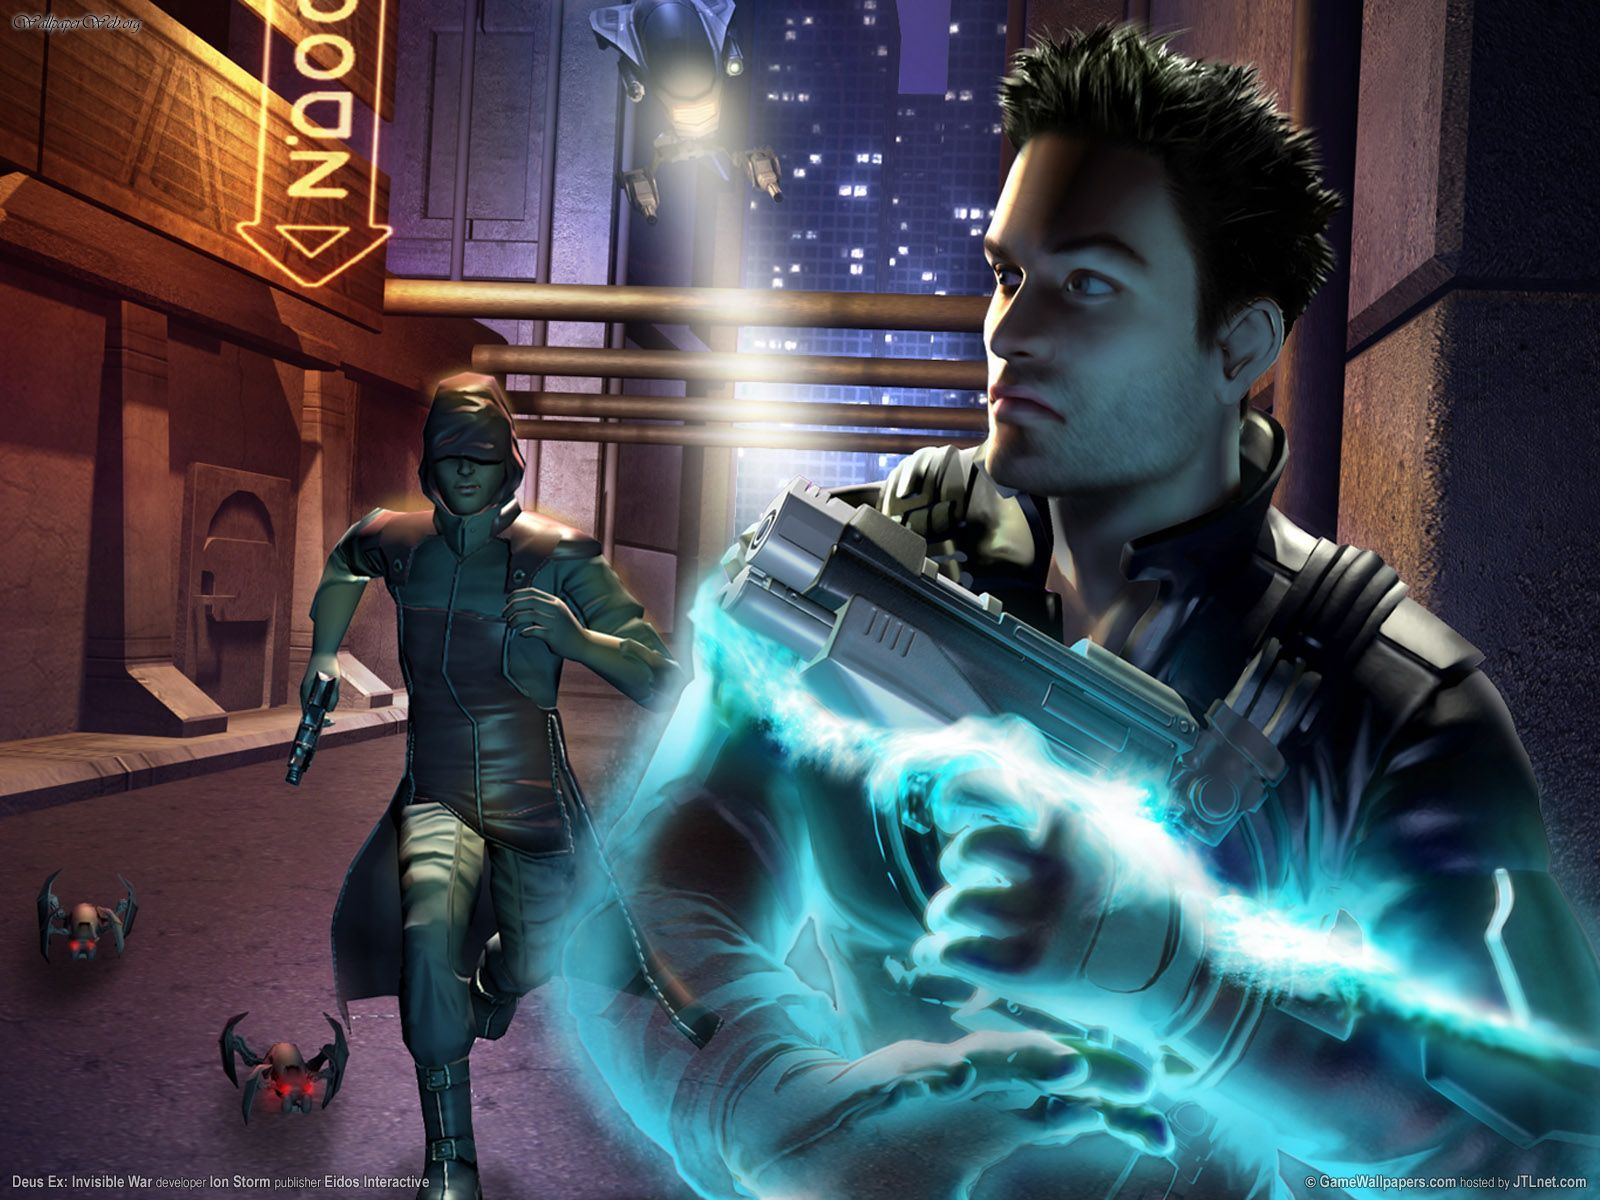 Deus Ex: Invisible War (Steam Gift/Region Free) HB link